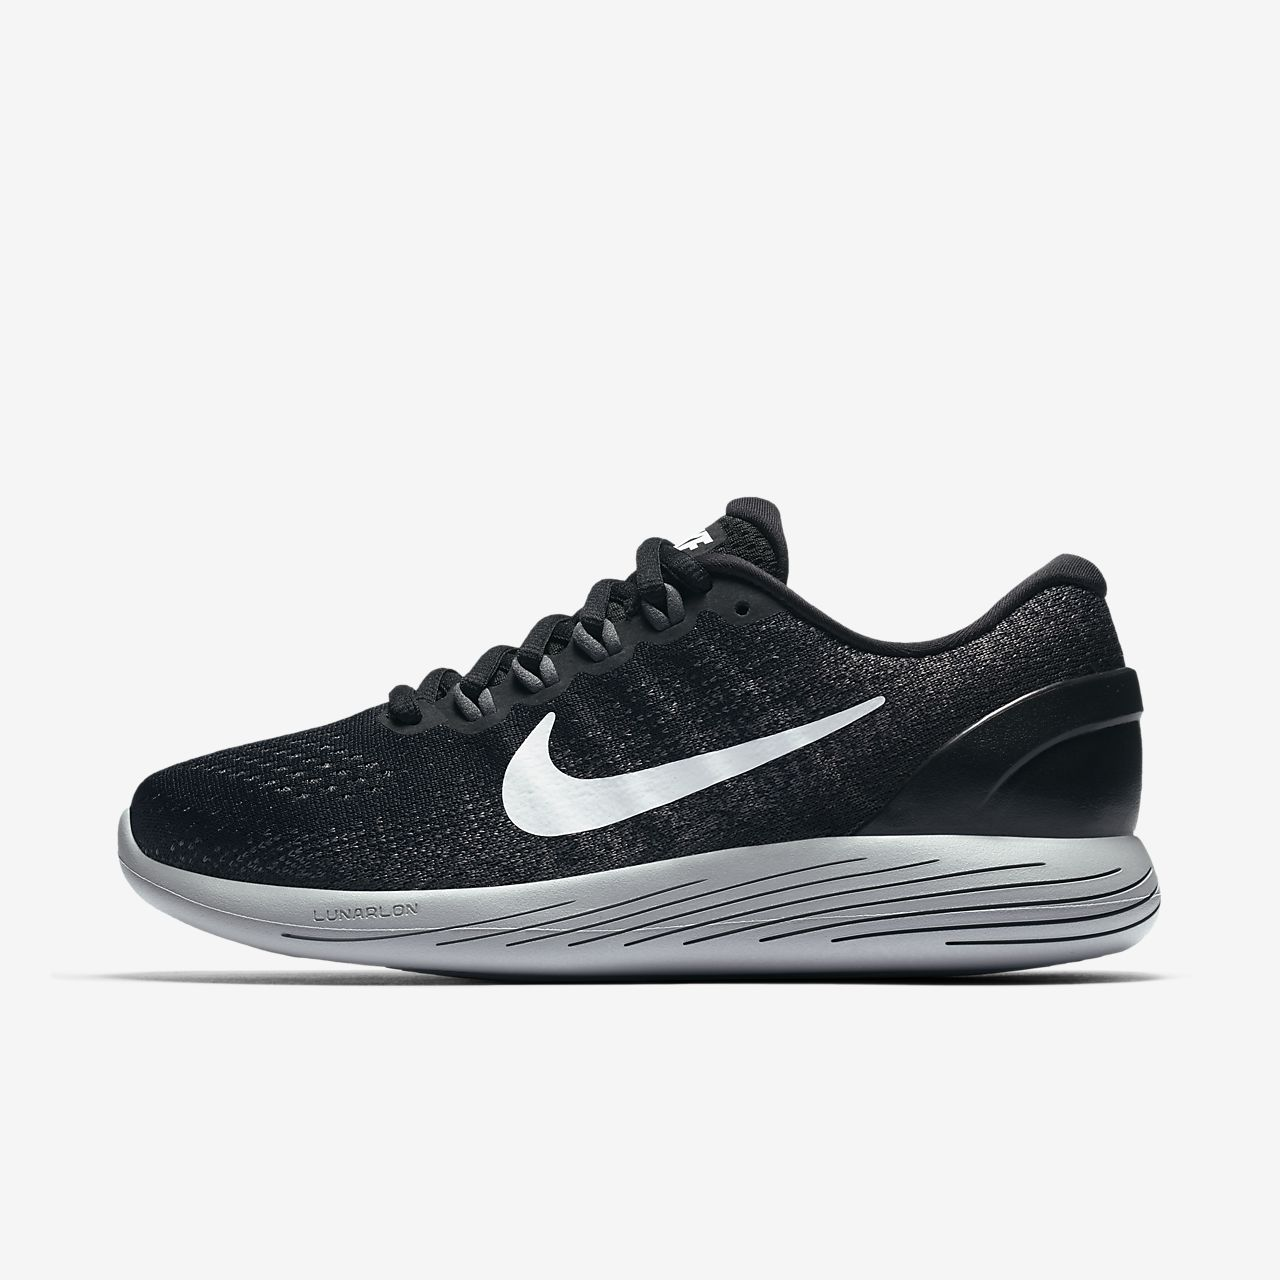 low priced 84b43 f7cff ... discount code for chaussure de running nike lunarglide 9 pour femme  0823e 9f96e